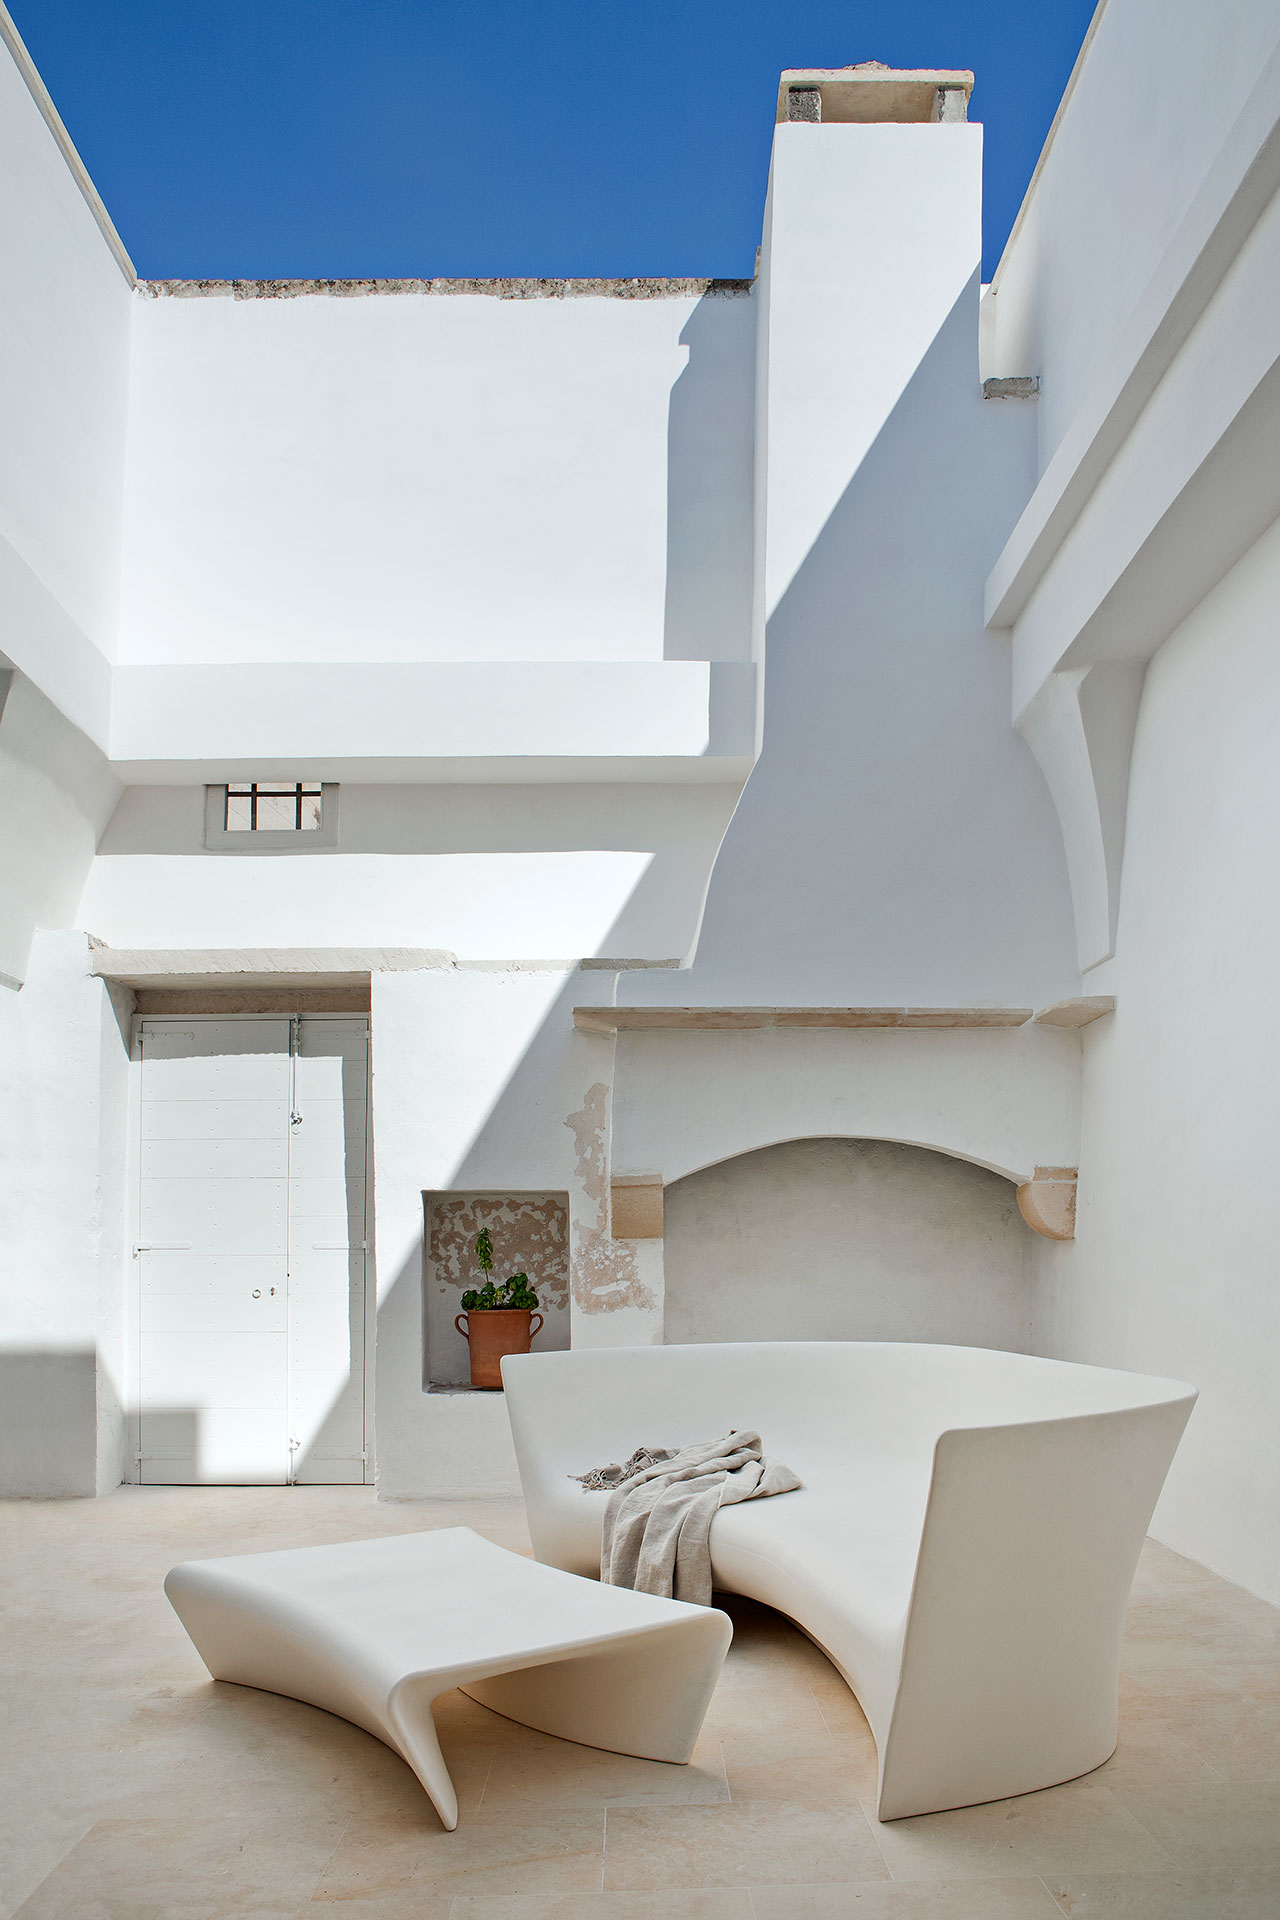 at home in puglia with ludovica roberto palomba yatzer photo by francesco bolis